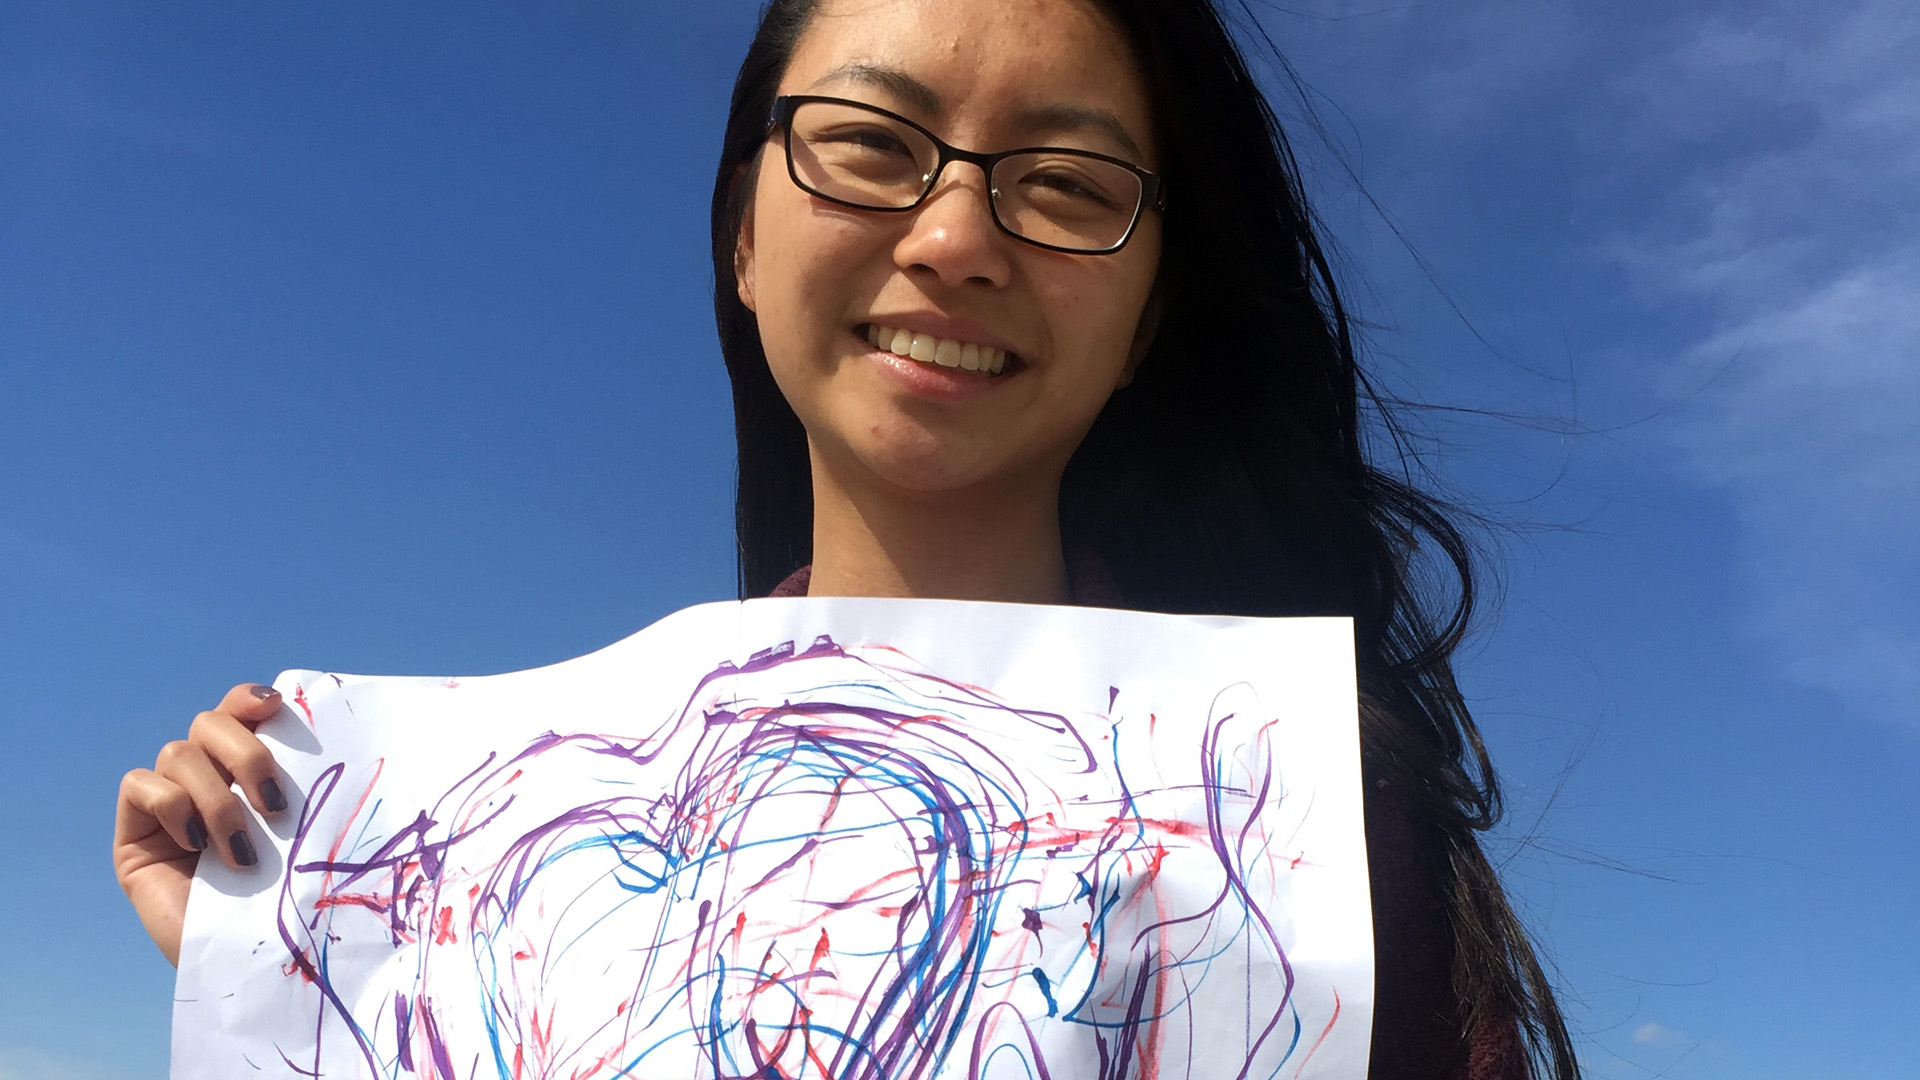 Tiffany Van Gilder holding the results of her Automatic Drawing art experience